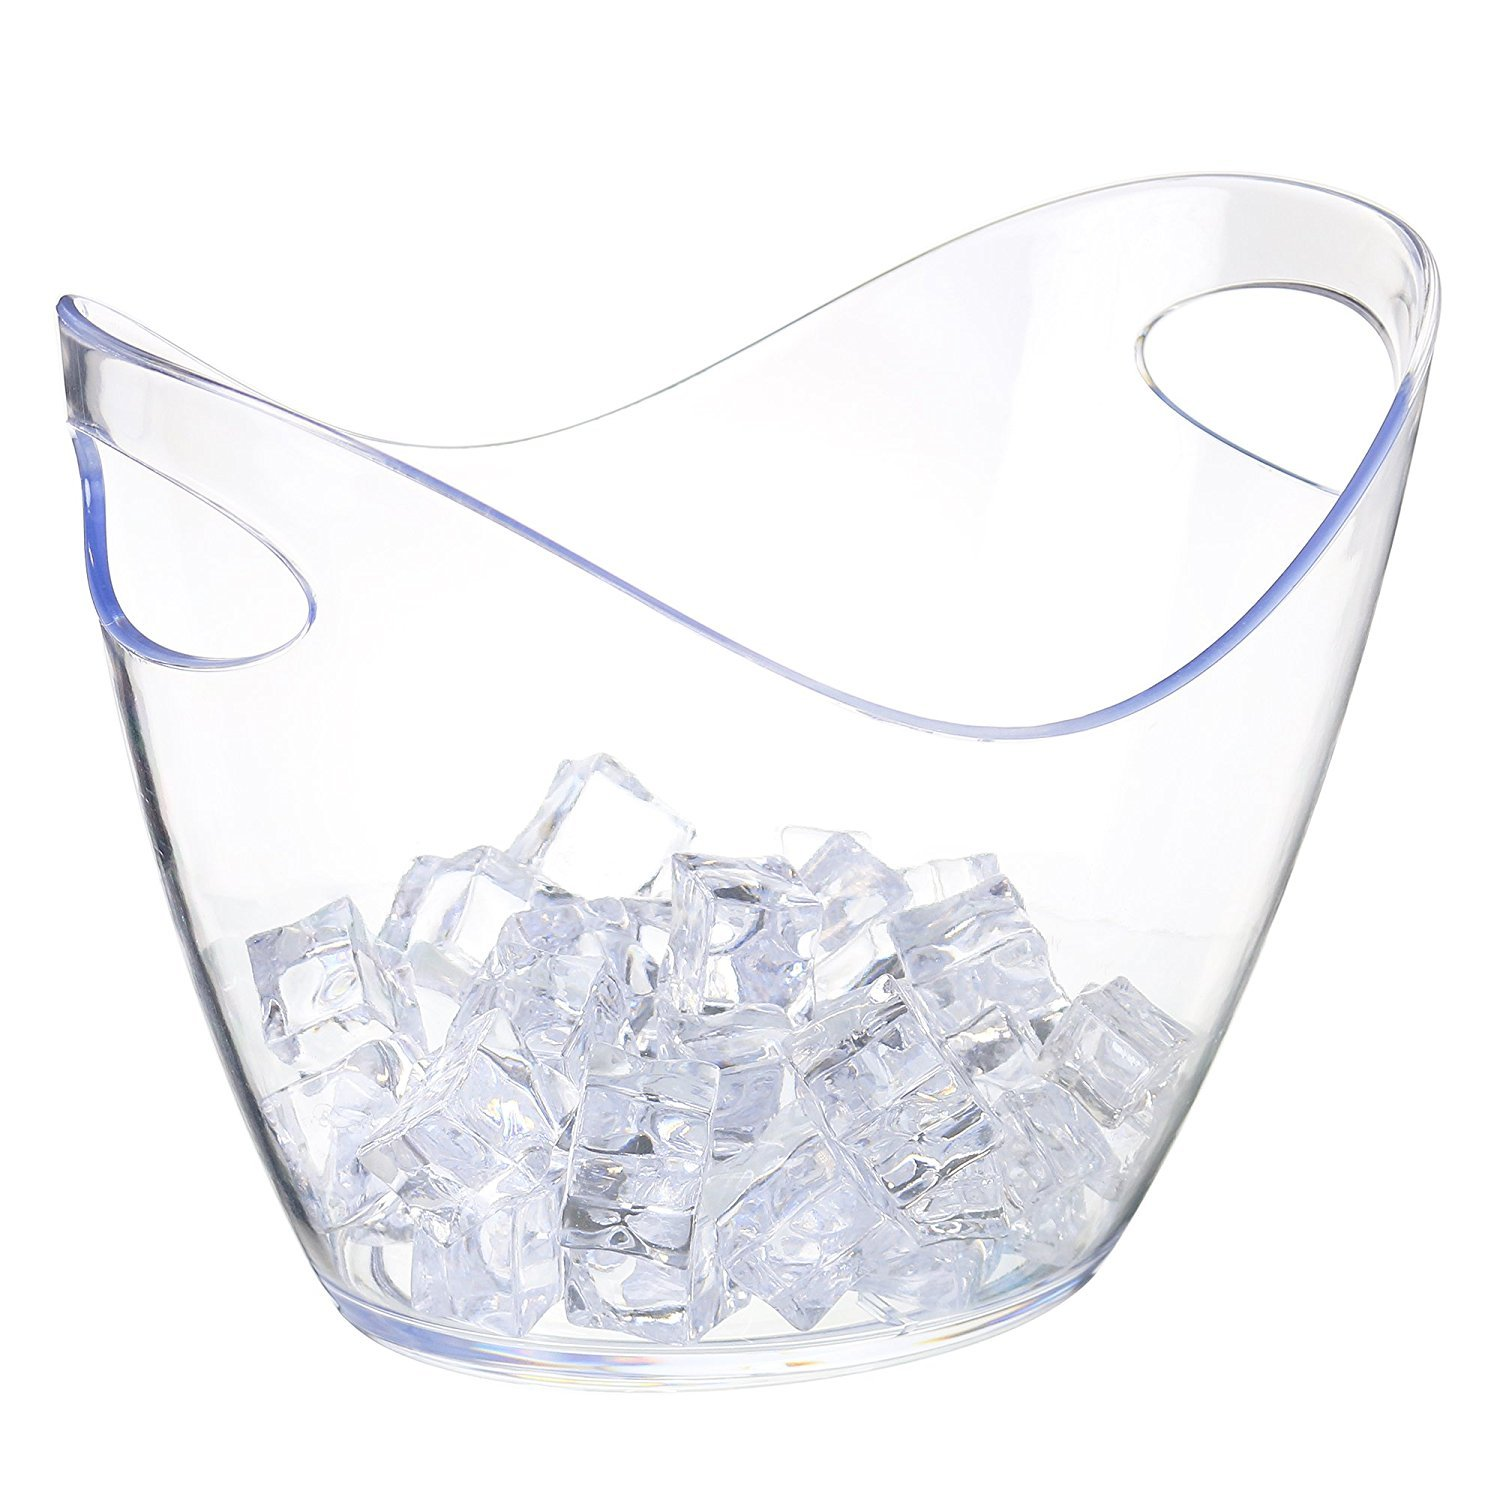 Ice Bucket Clear Acrylic 3.5 Liter Good for up to 2 Wine or Champagne Bottles Ice Bucket Agog